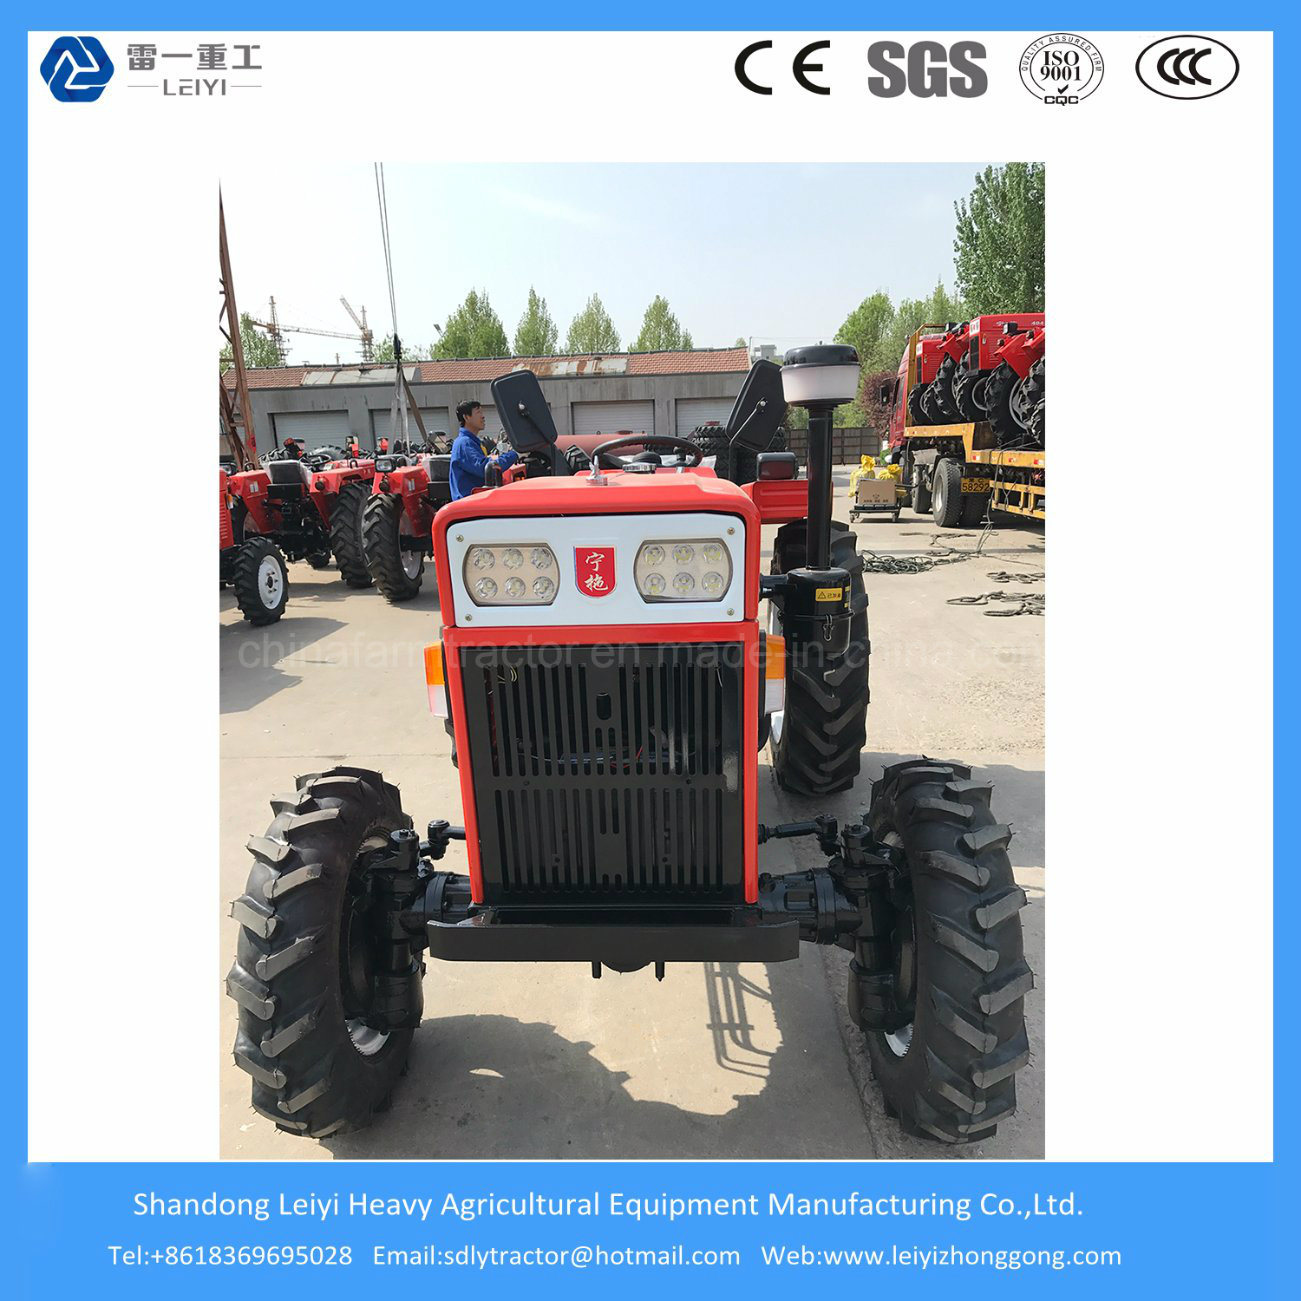 40HP 4WD Weifang Mini Farming/Agricultural/Lawn/Garden/Diesel Tractor with Farm Machinery